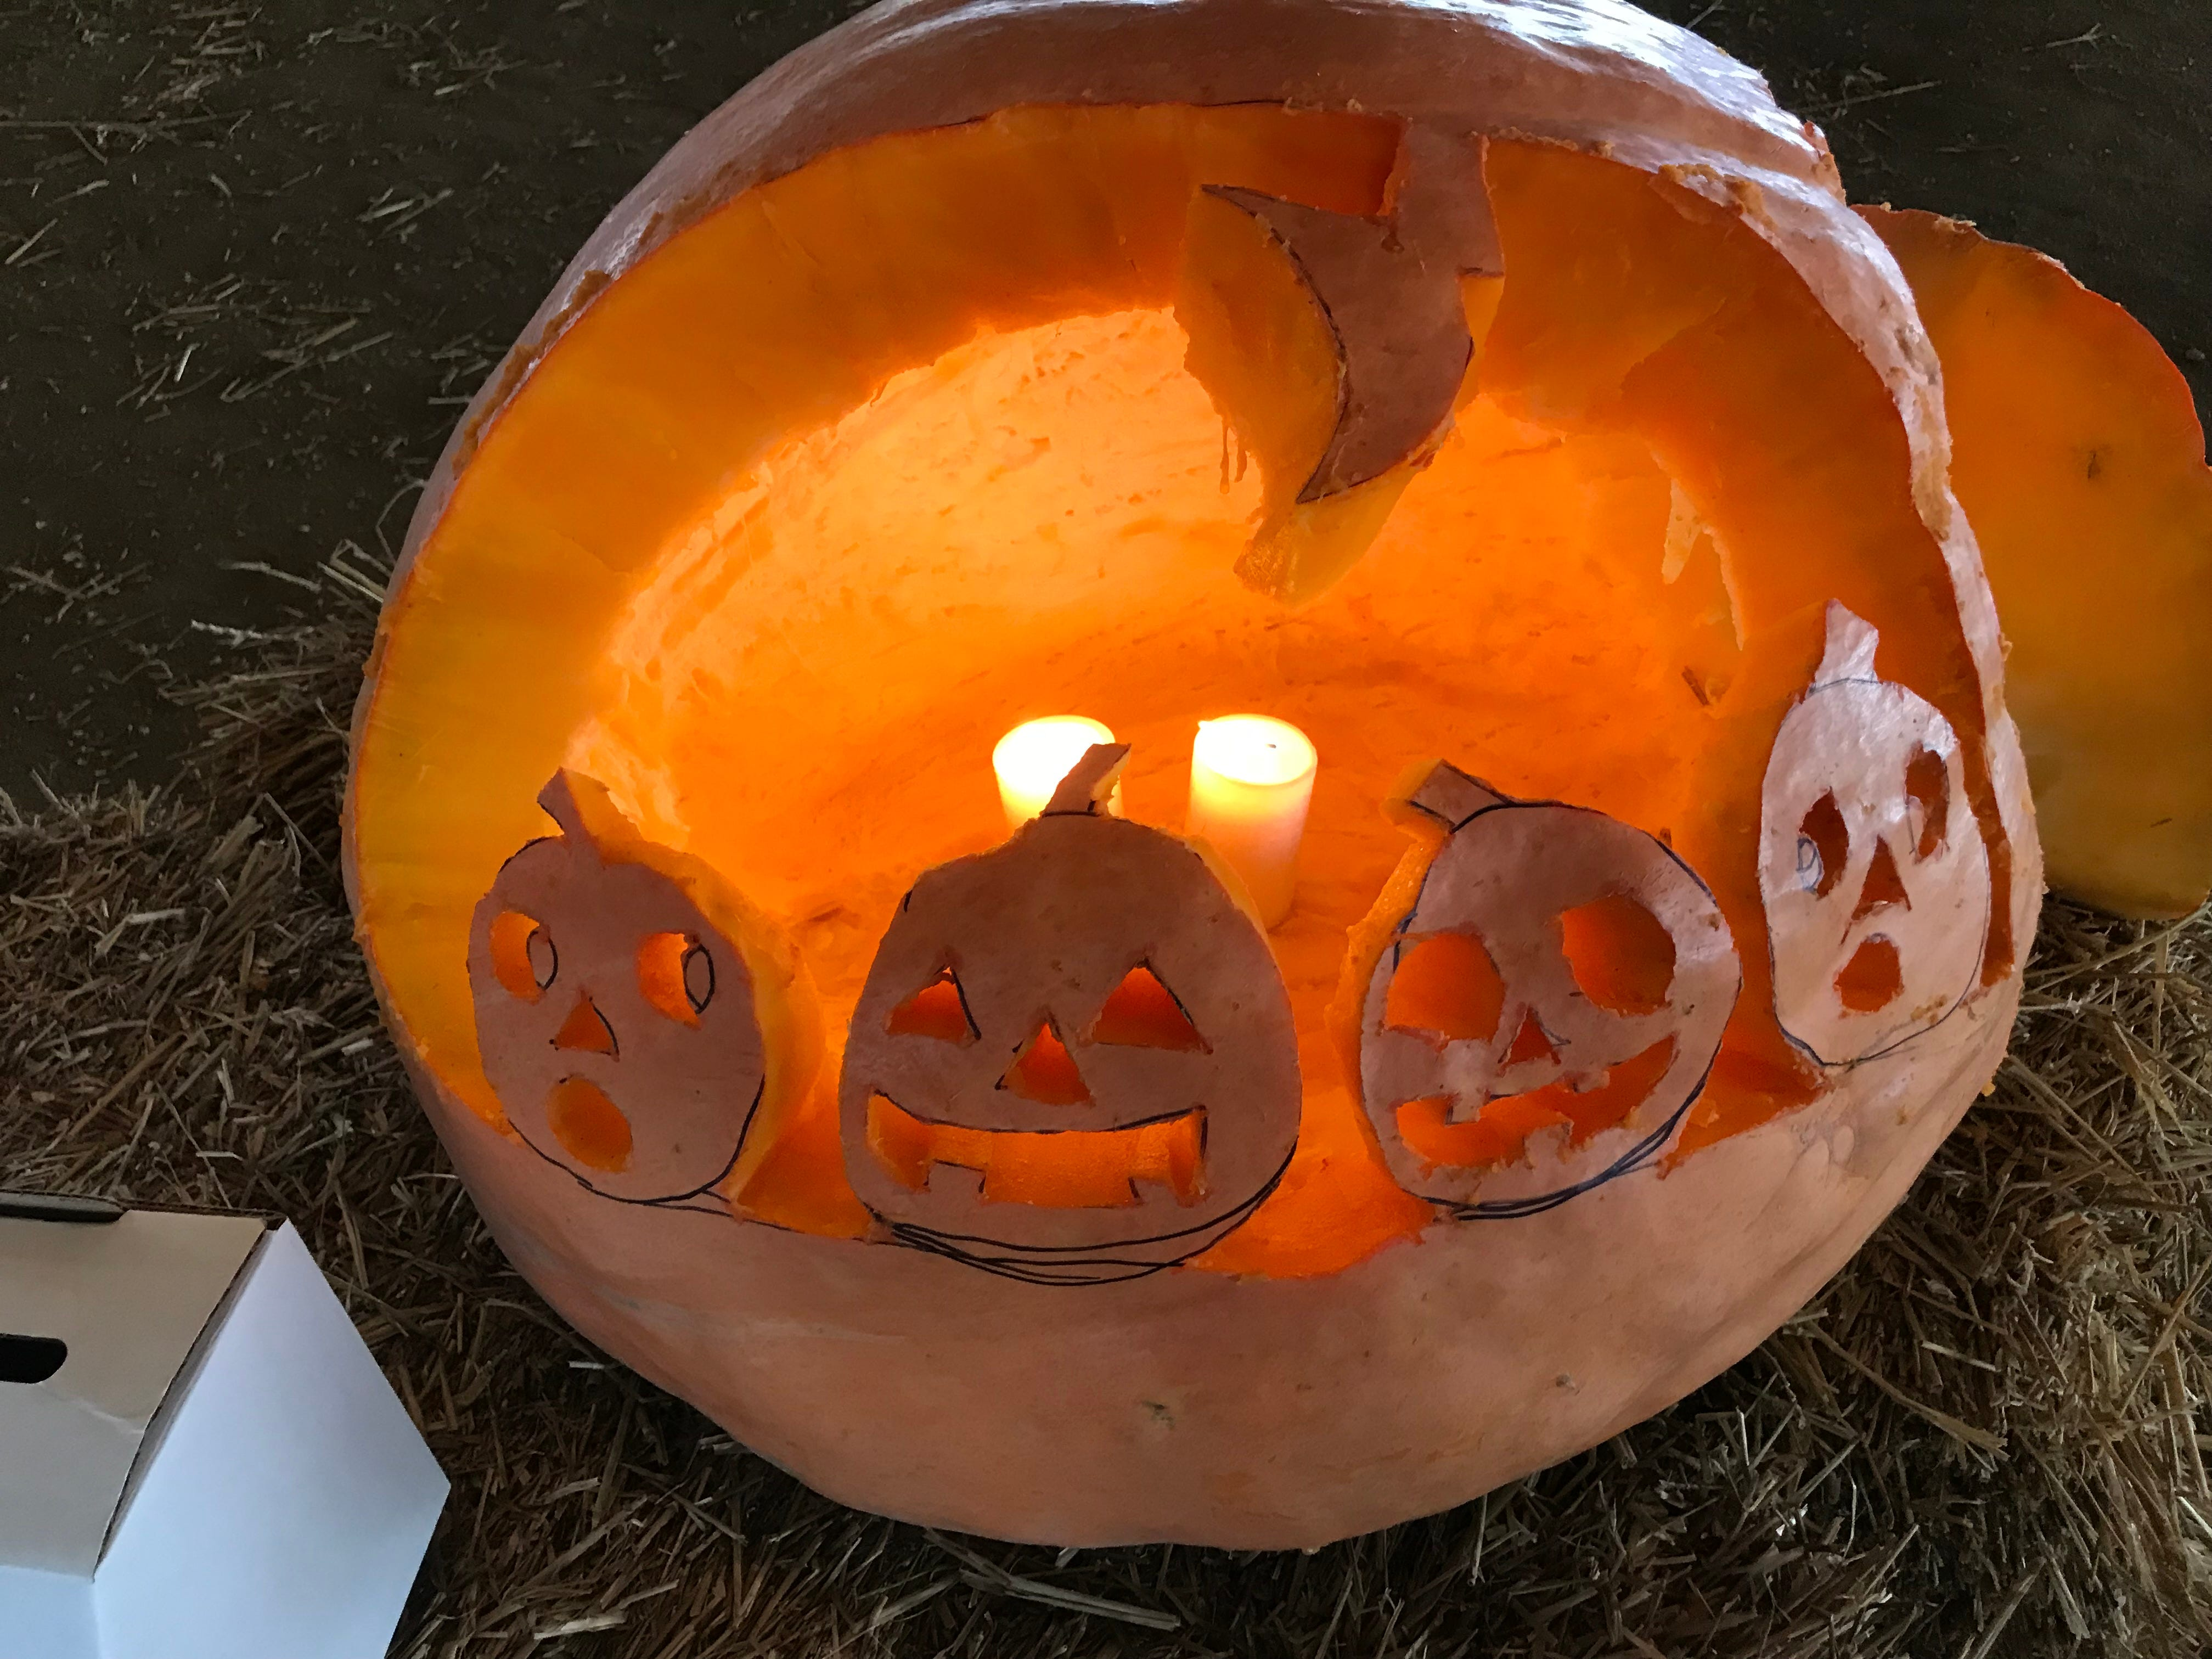 Eagles 97.7 created this pumpkin for the first Great Delaware Pumpkin Carve in Harrington.